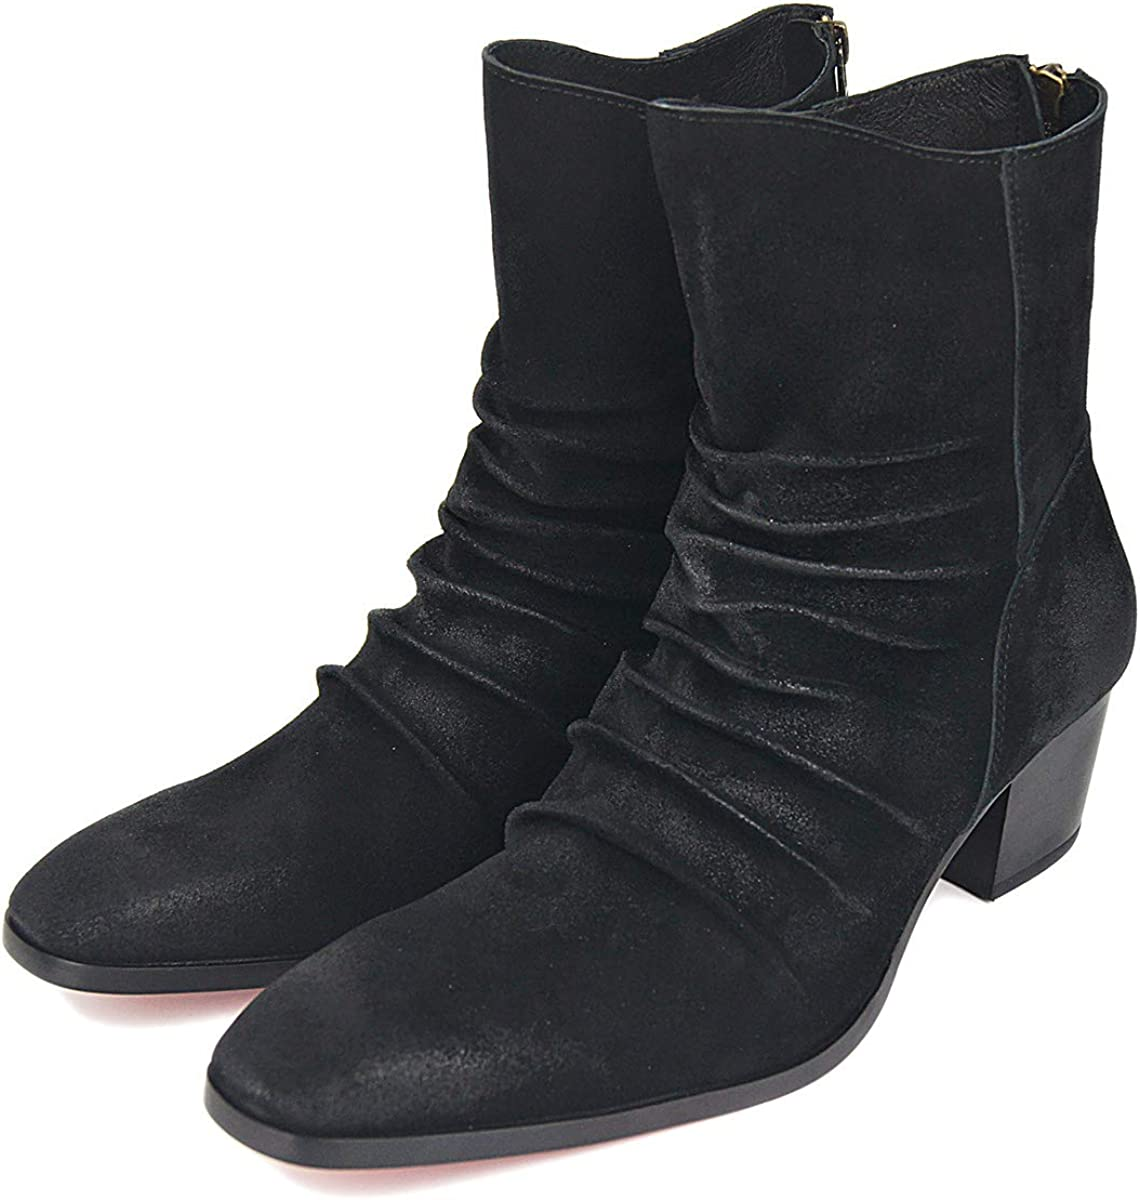 OTTO ZONE Dress Boot for Men Leather Chukka Designer Boots Casual Heel Shoes Zipper-up